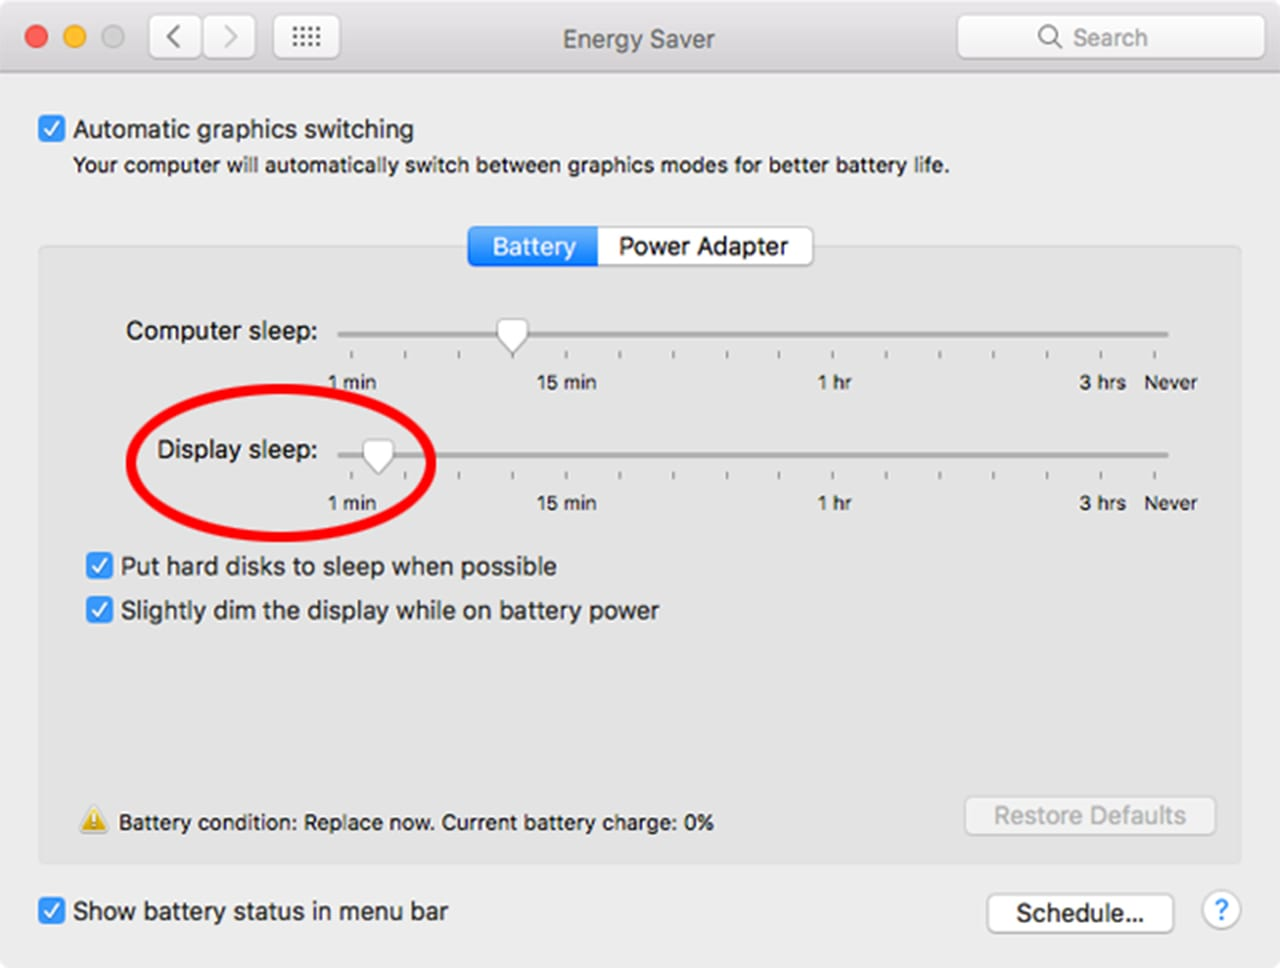 (Don't set your Mac to sleep too soon. You may find it's entering sleep while you're still actively working.)